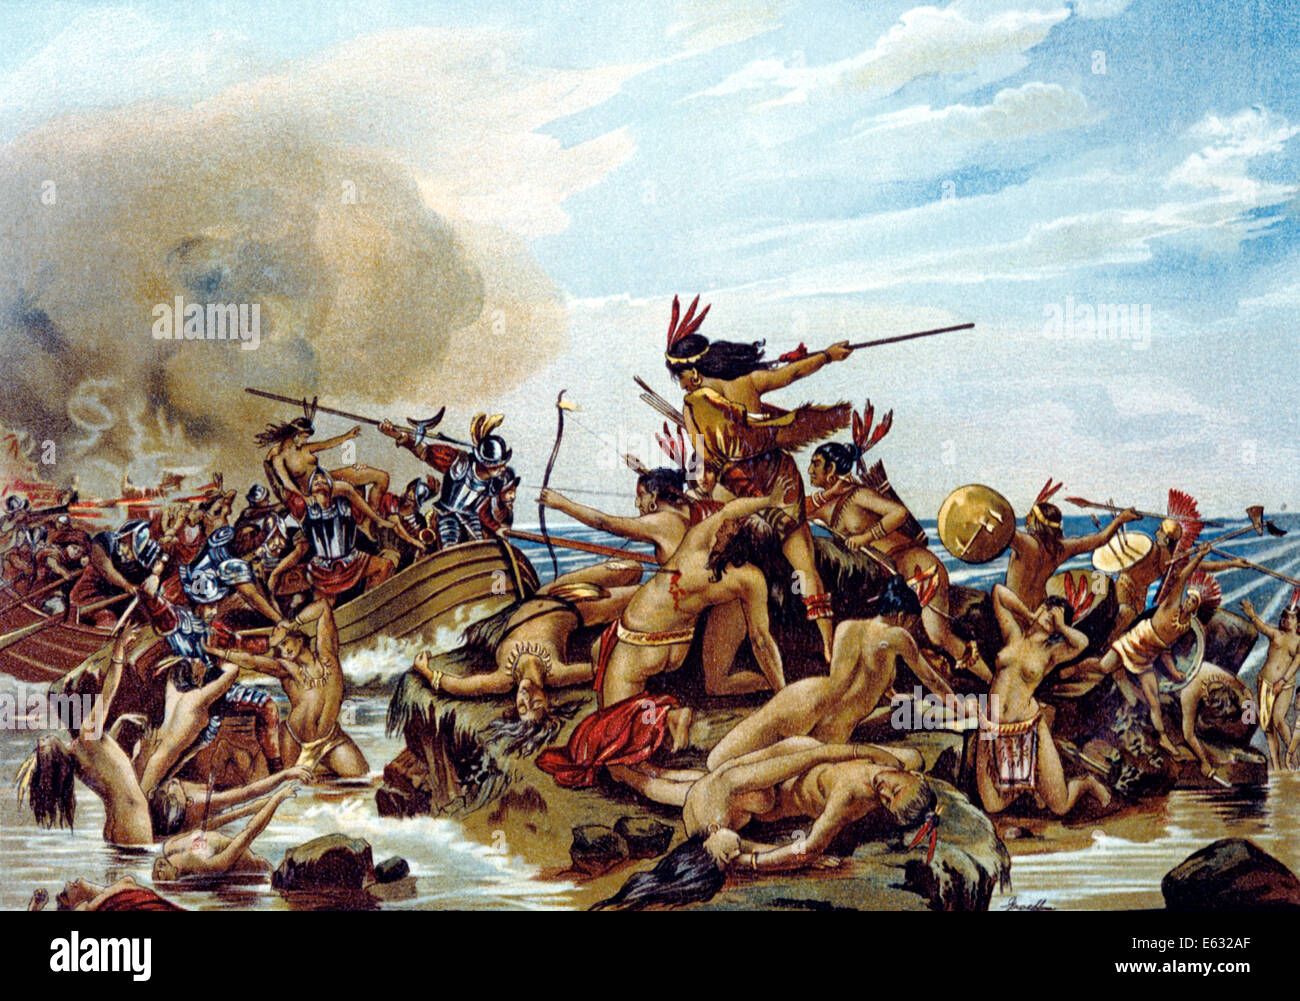 S Early Armored European Explorers Fighting With